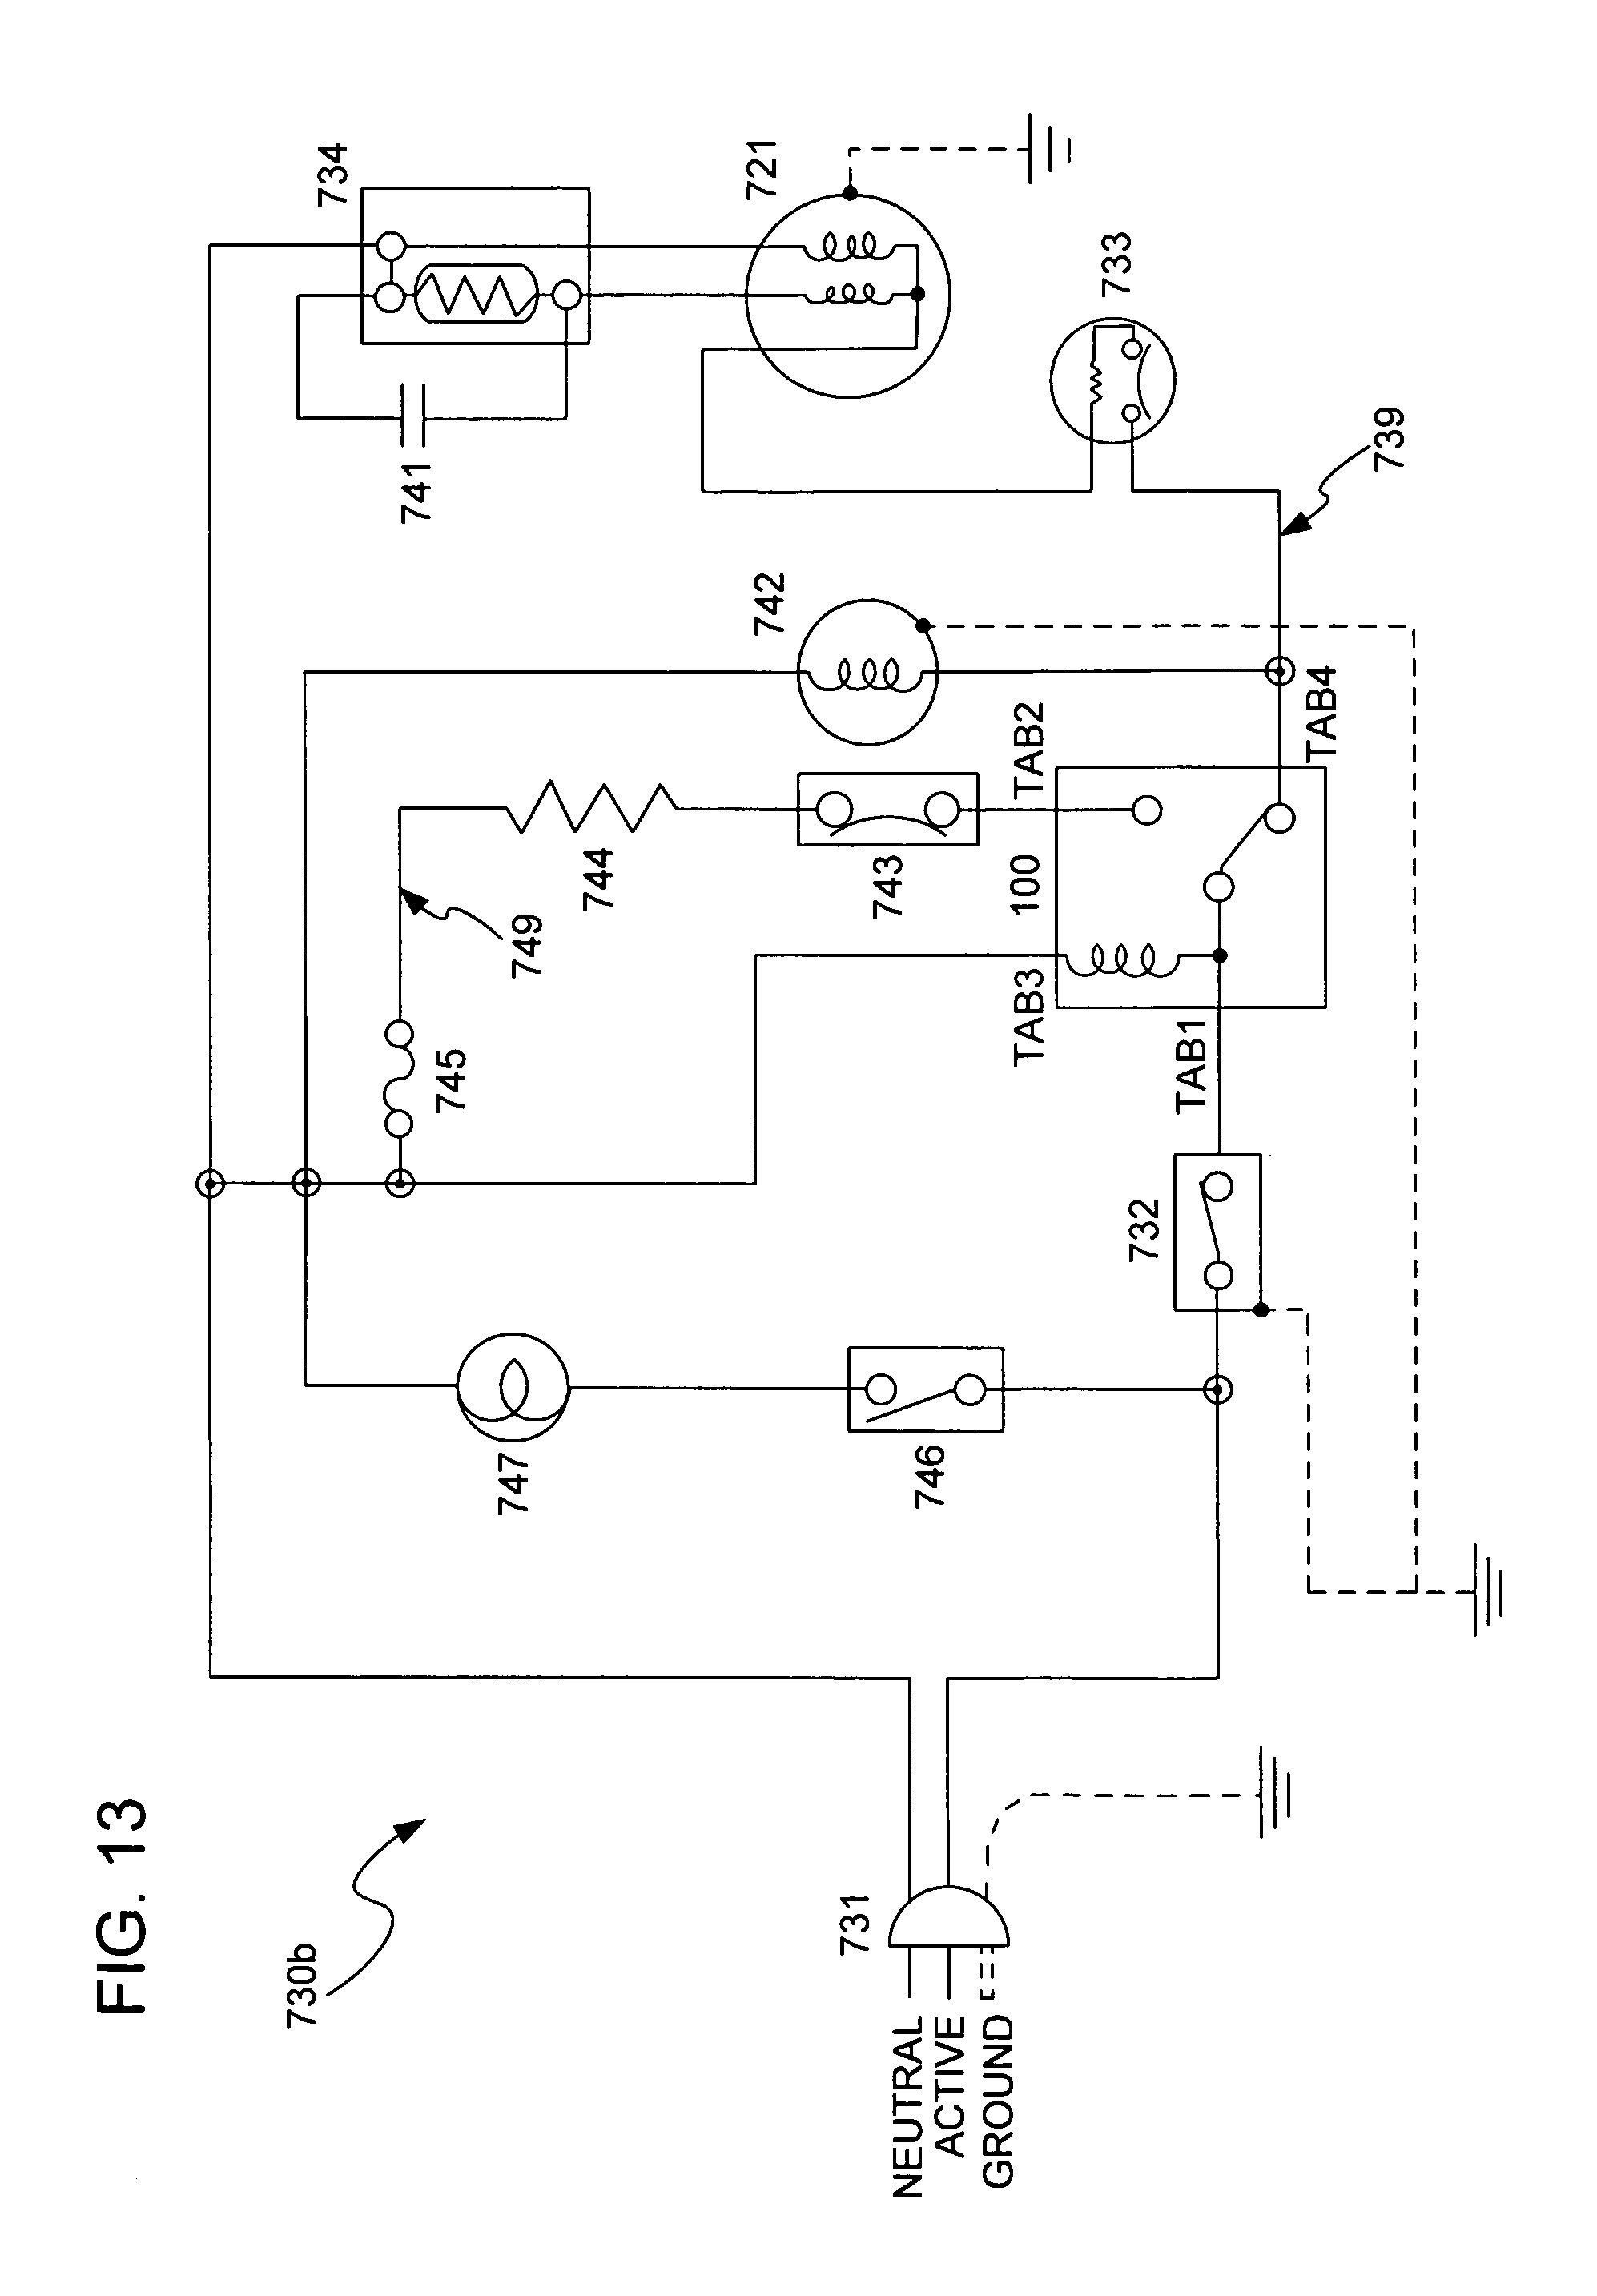 Paragon Defrost Timer Wiring Diagram